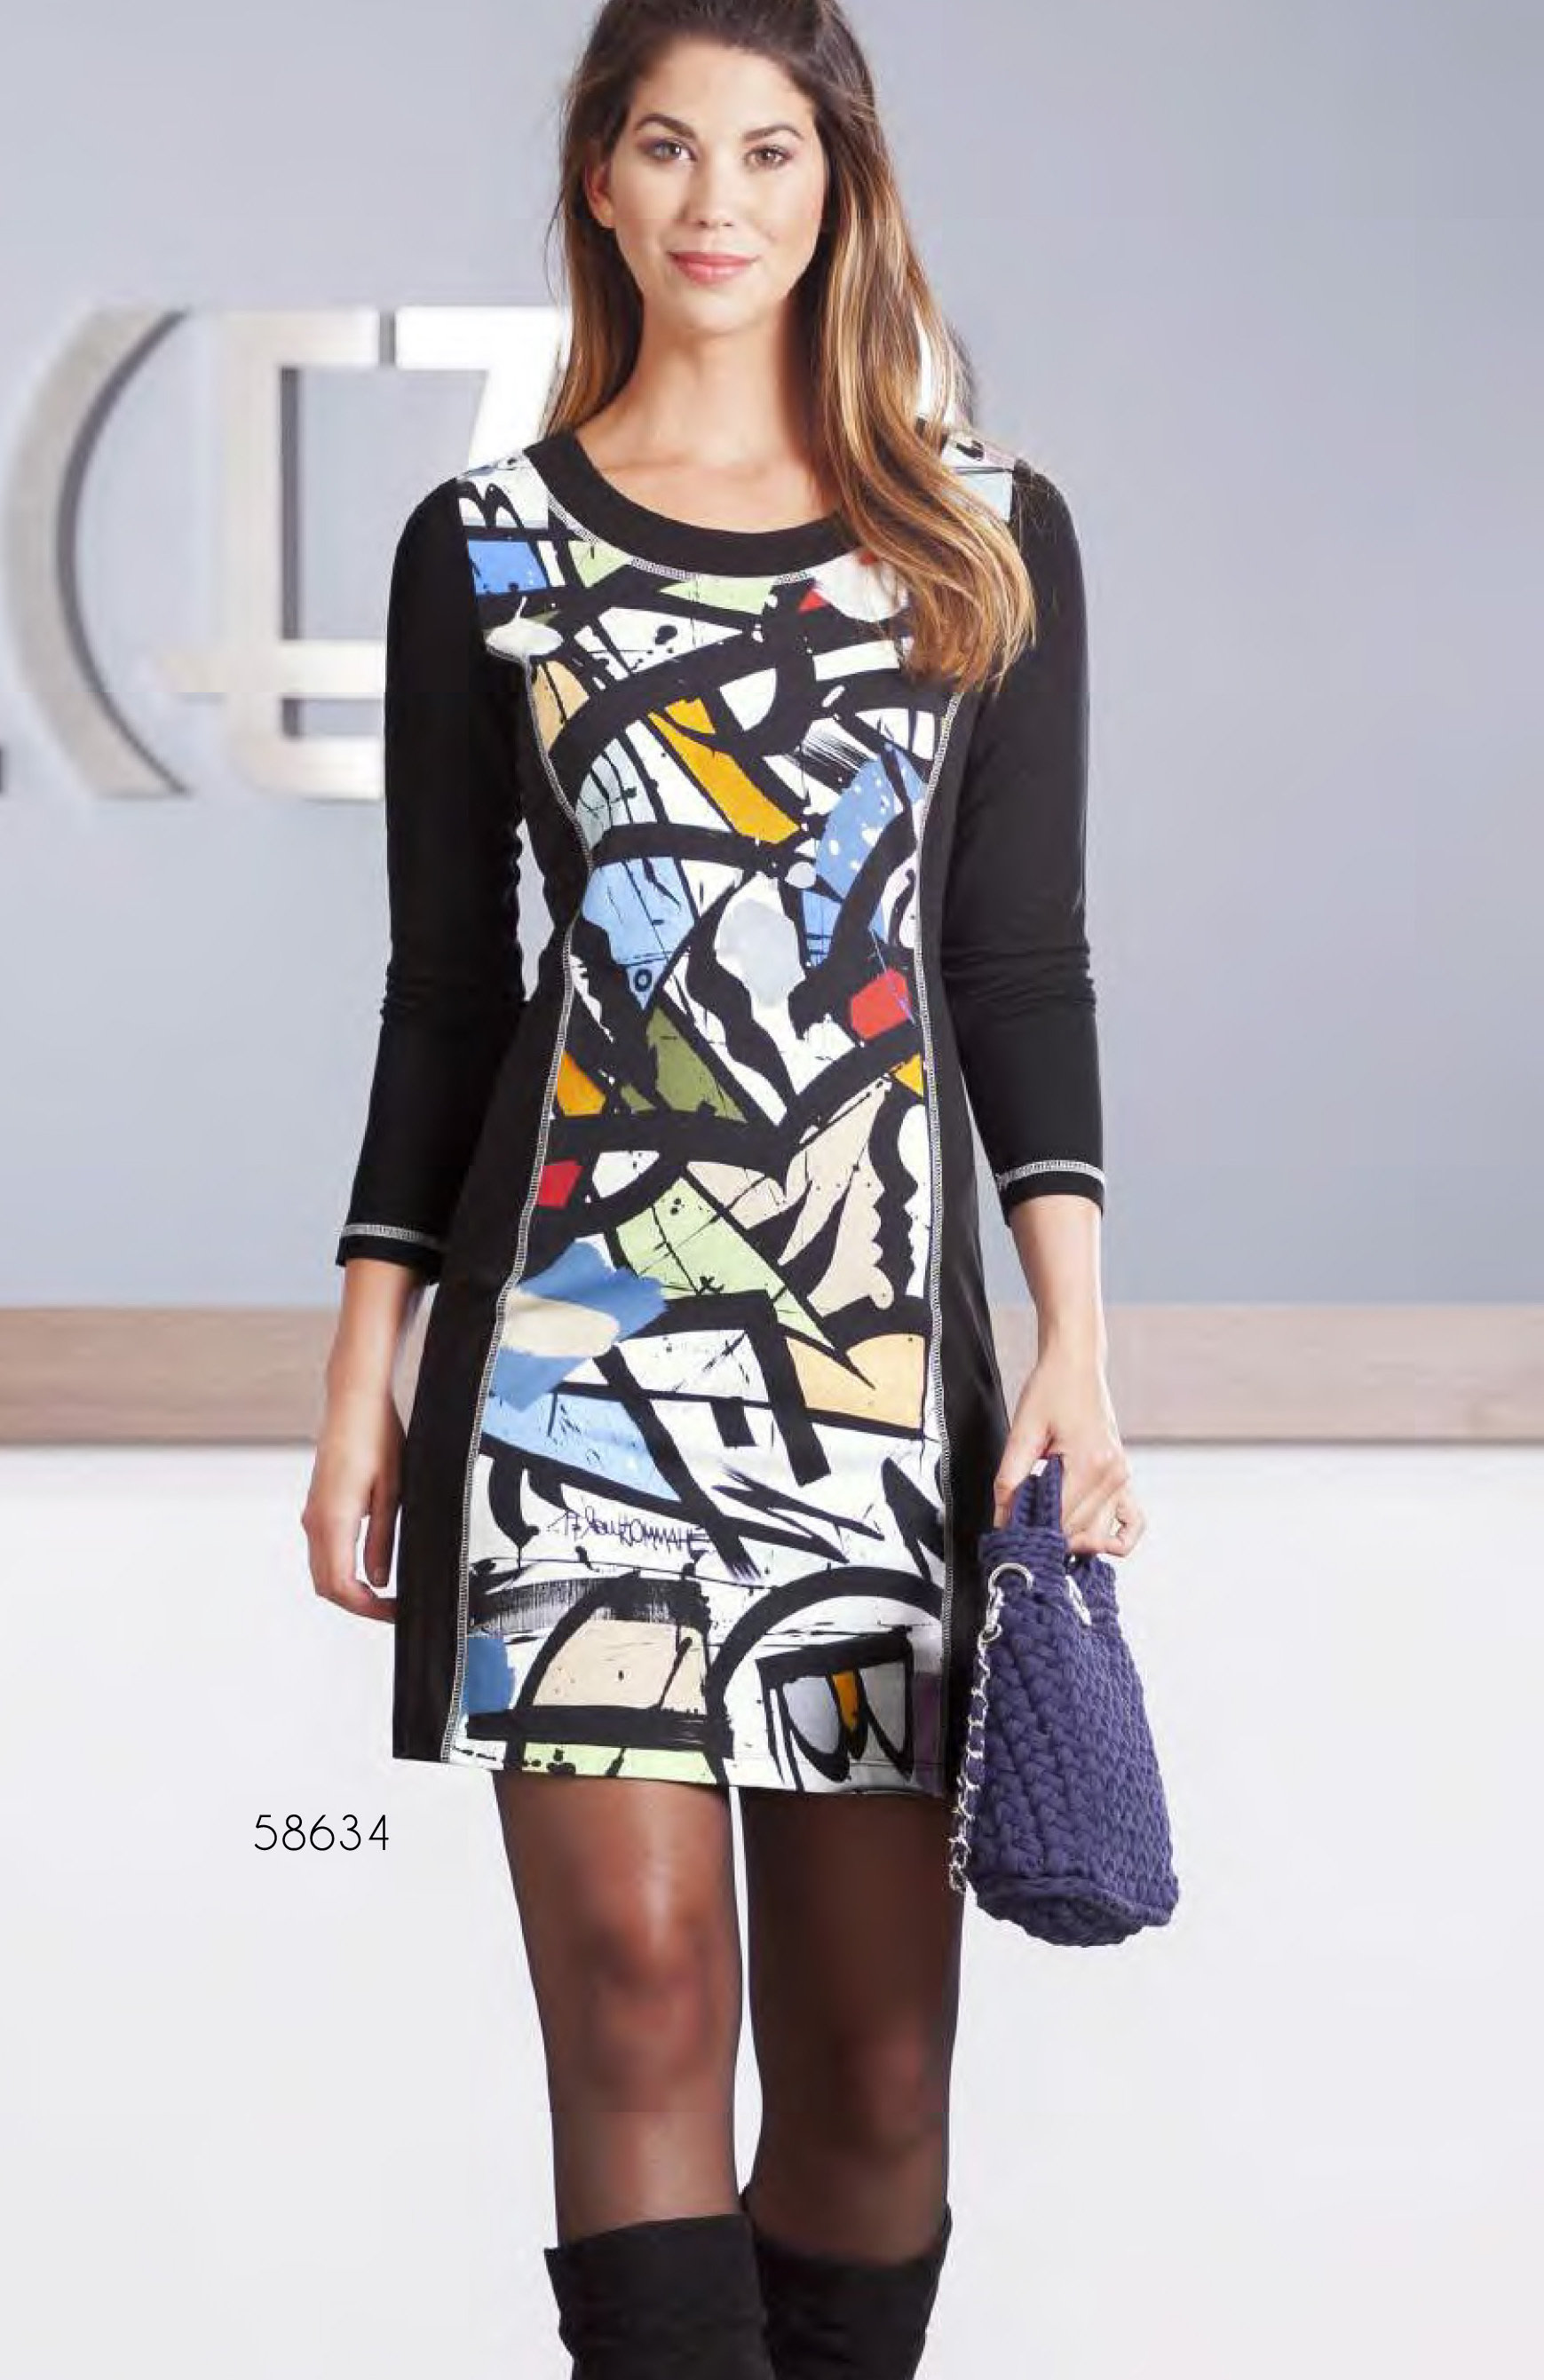 Simply Art Dolcezza: Gorgeous Graffiti Art Cotton Knit Dress/Tunic (2 Left!) DOLCEZZA_SIMPLYART_58634_N